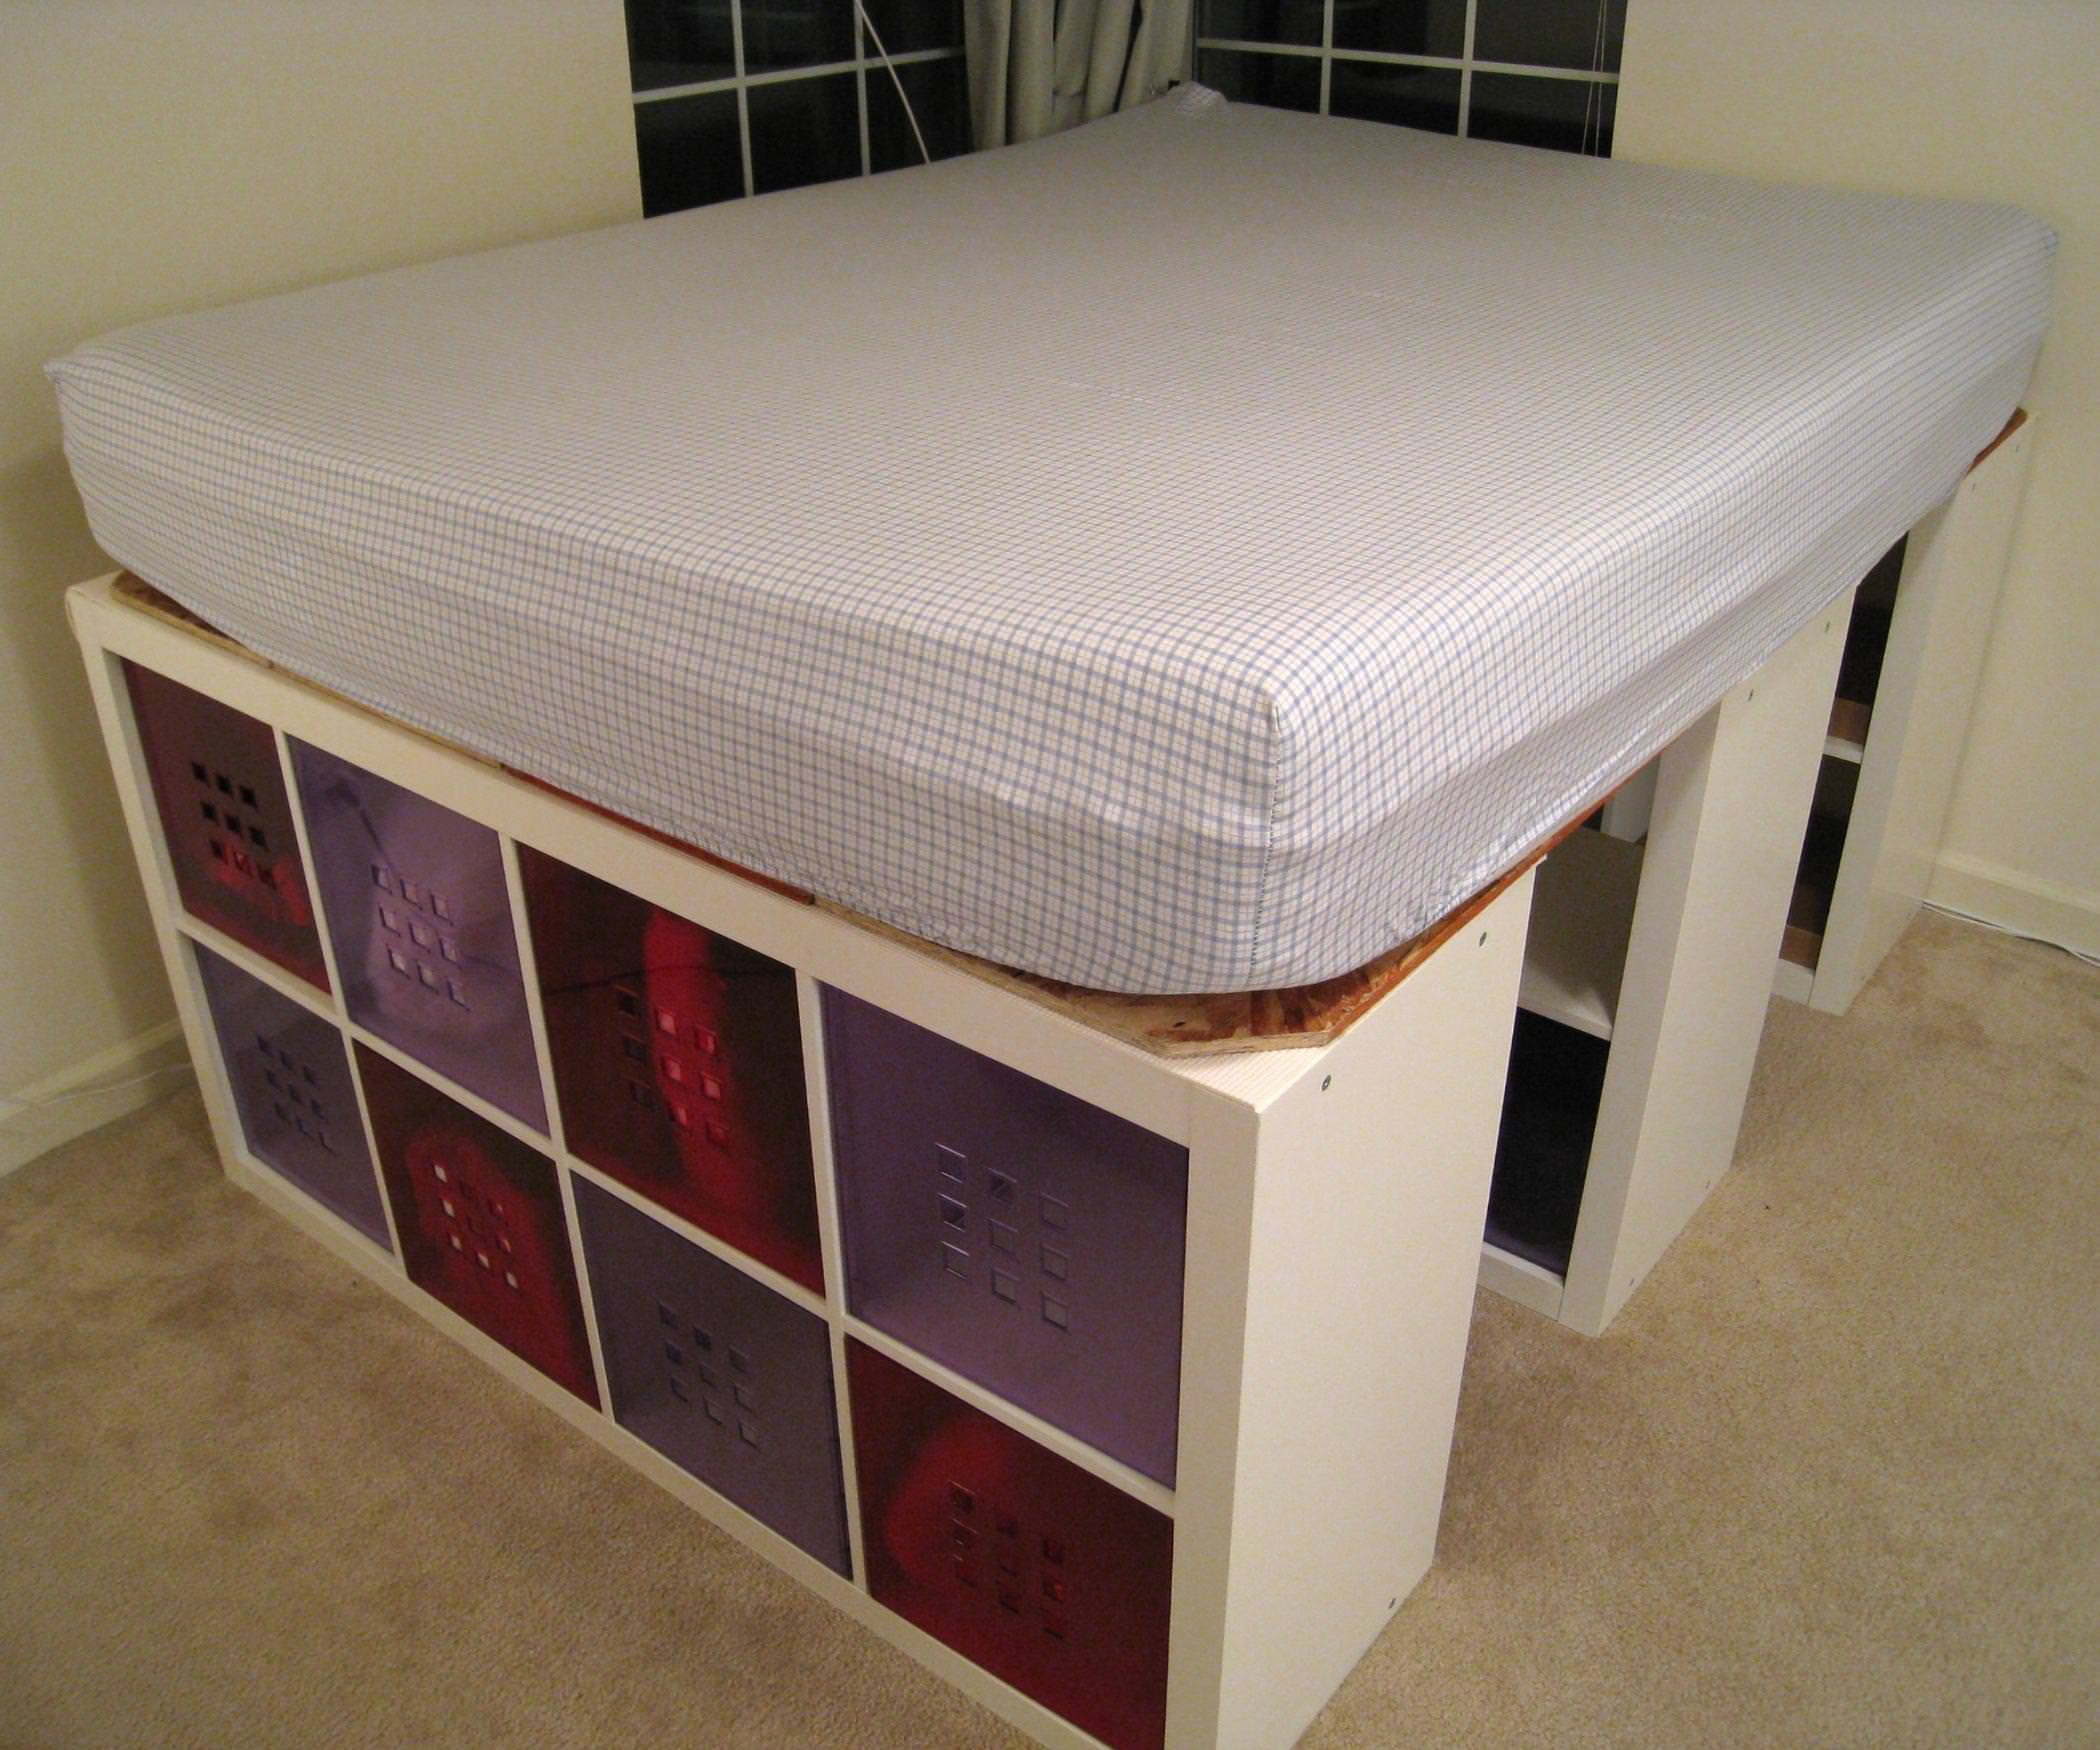 Best ideas about DIY Queen Storage Bed . Save or Pin 10 Proper Feng Shui Bed Placement for Wealth — Lugenda Now.